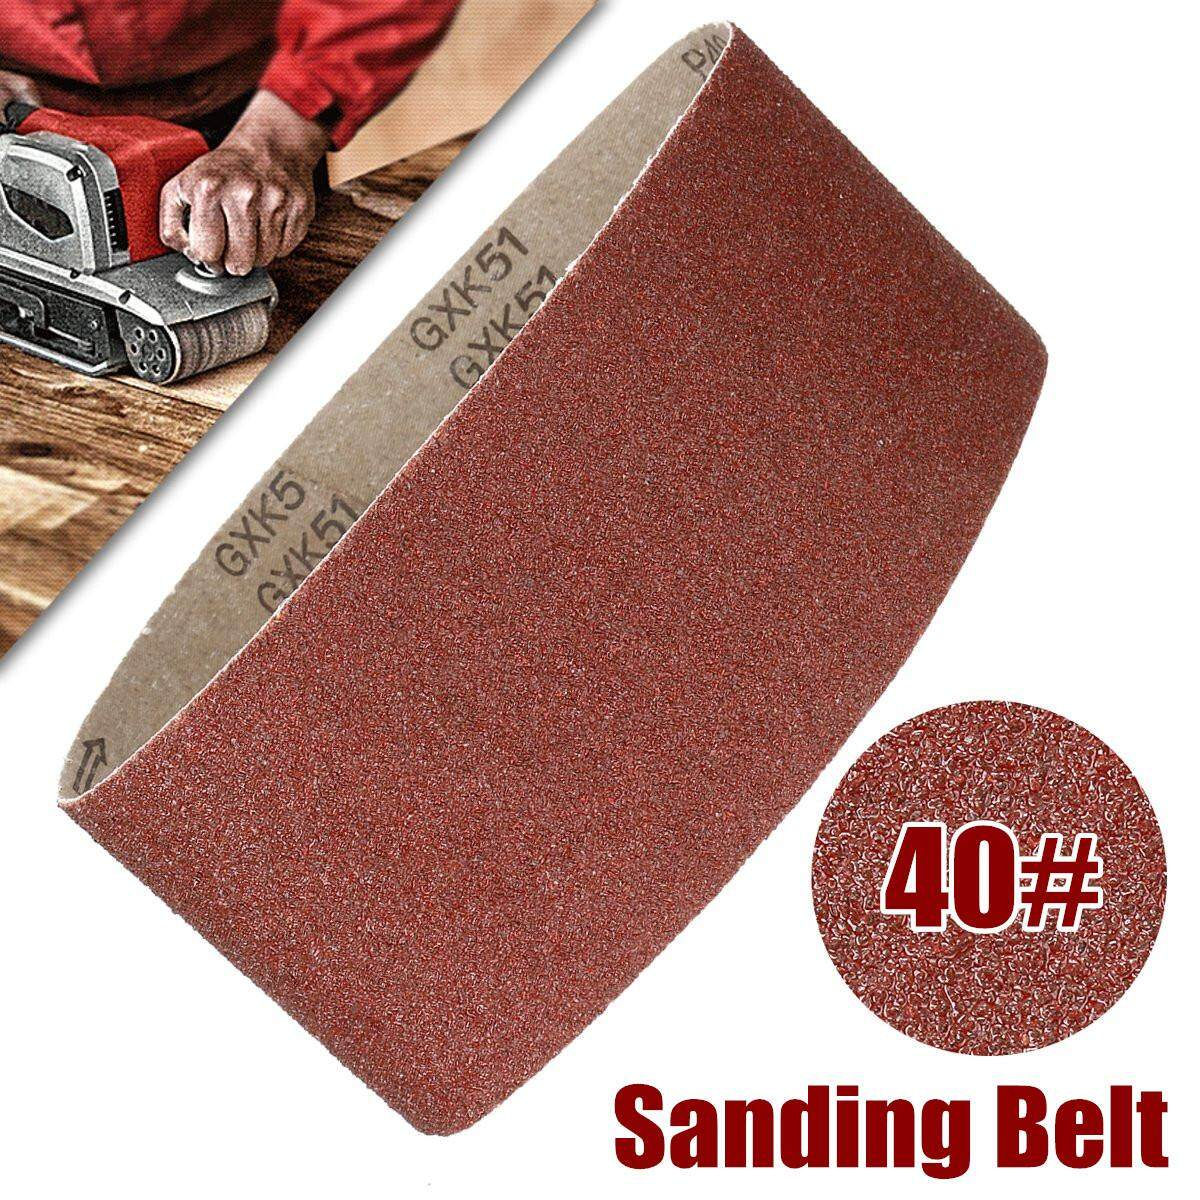 6Pcs 40/60Grits Sanding Belt 610x100MM 4x24 Ring Abrasive Aluminium Oxide for Sander